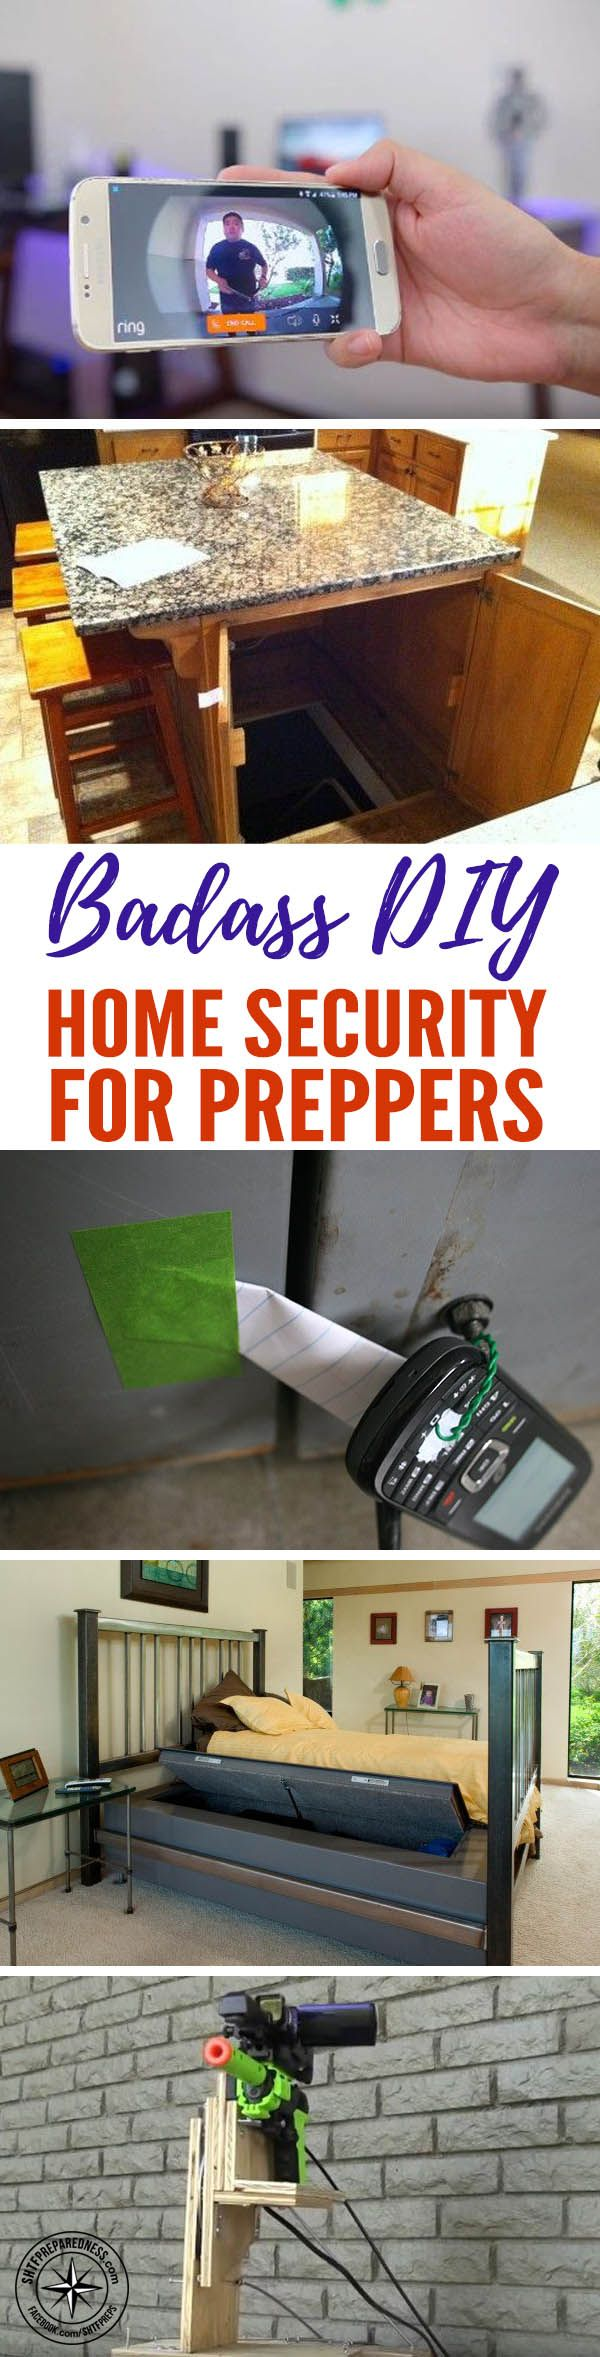 5 Things You Should Never Do During A Home Invasion Diy Home Security Home Security Tips Home Security